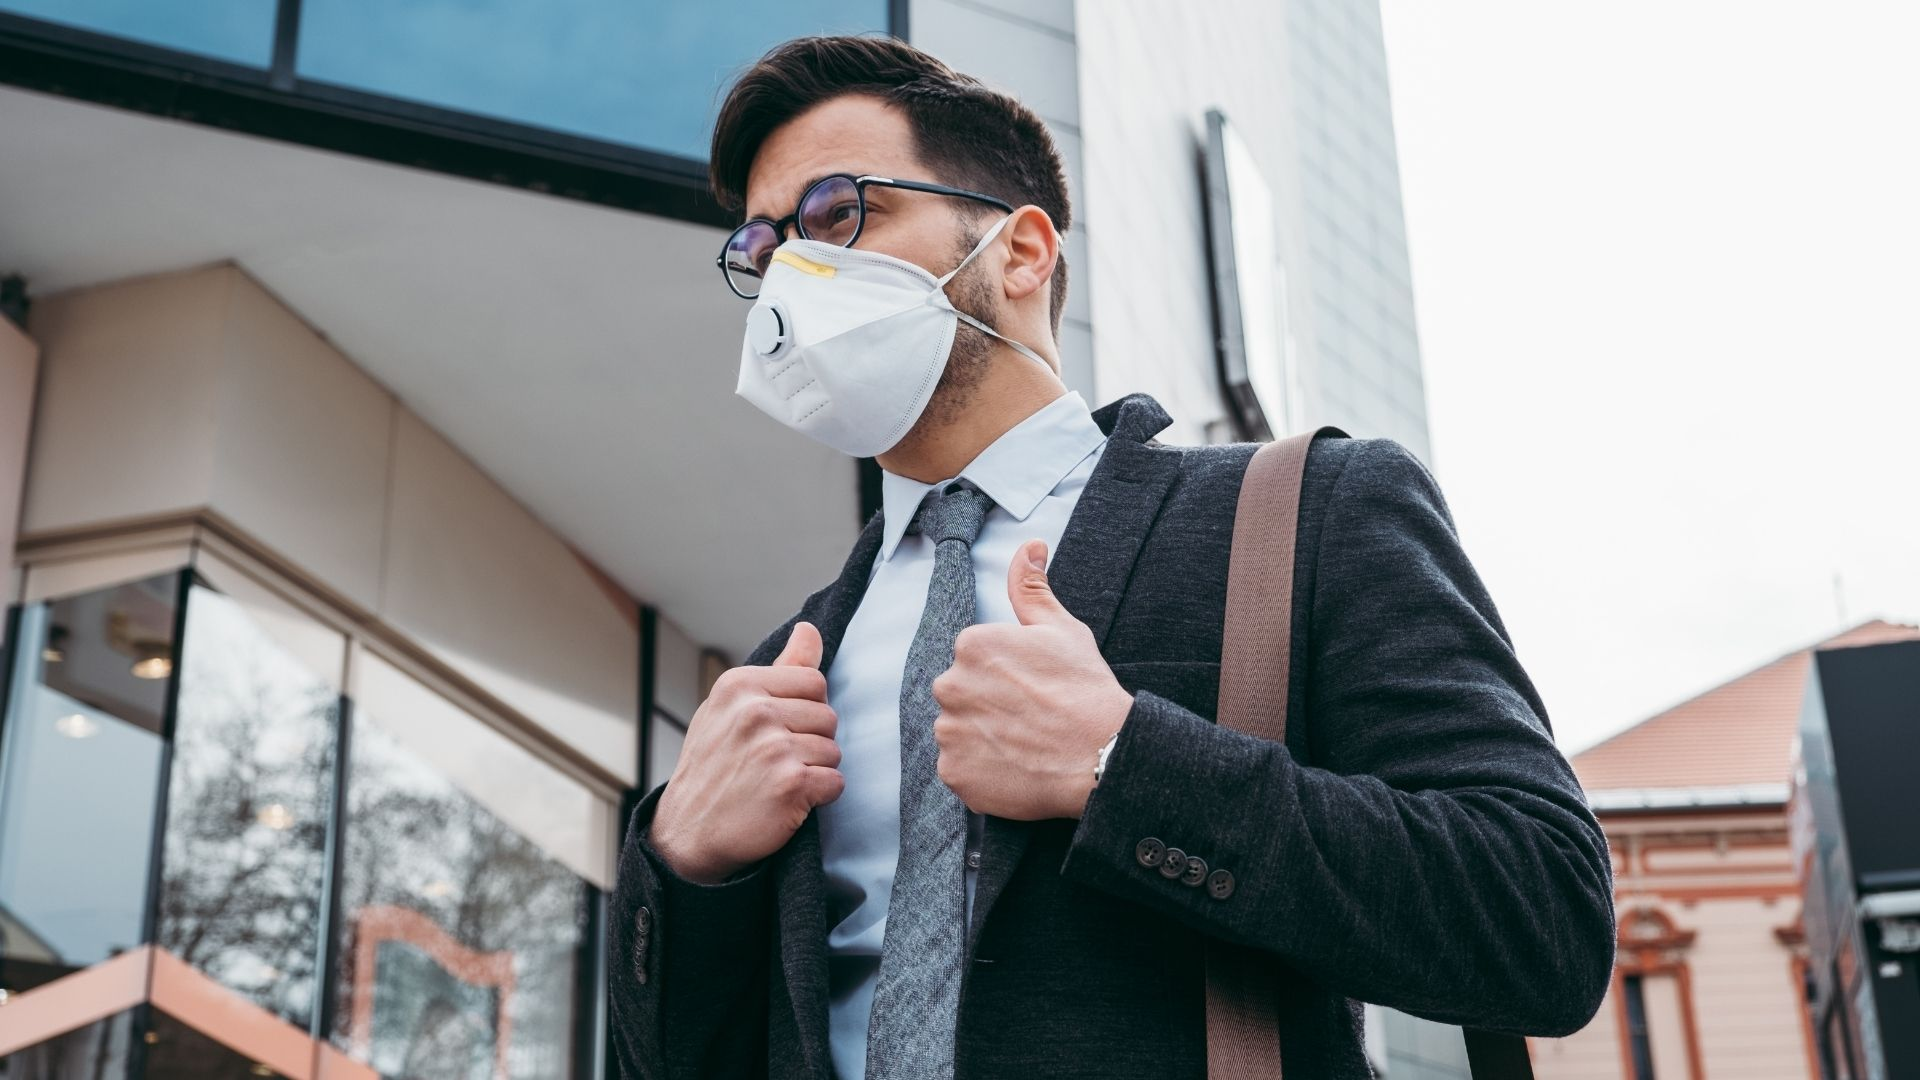 Learning from the pandemic 41